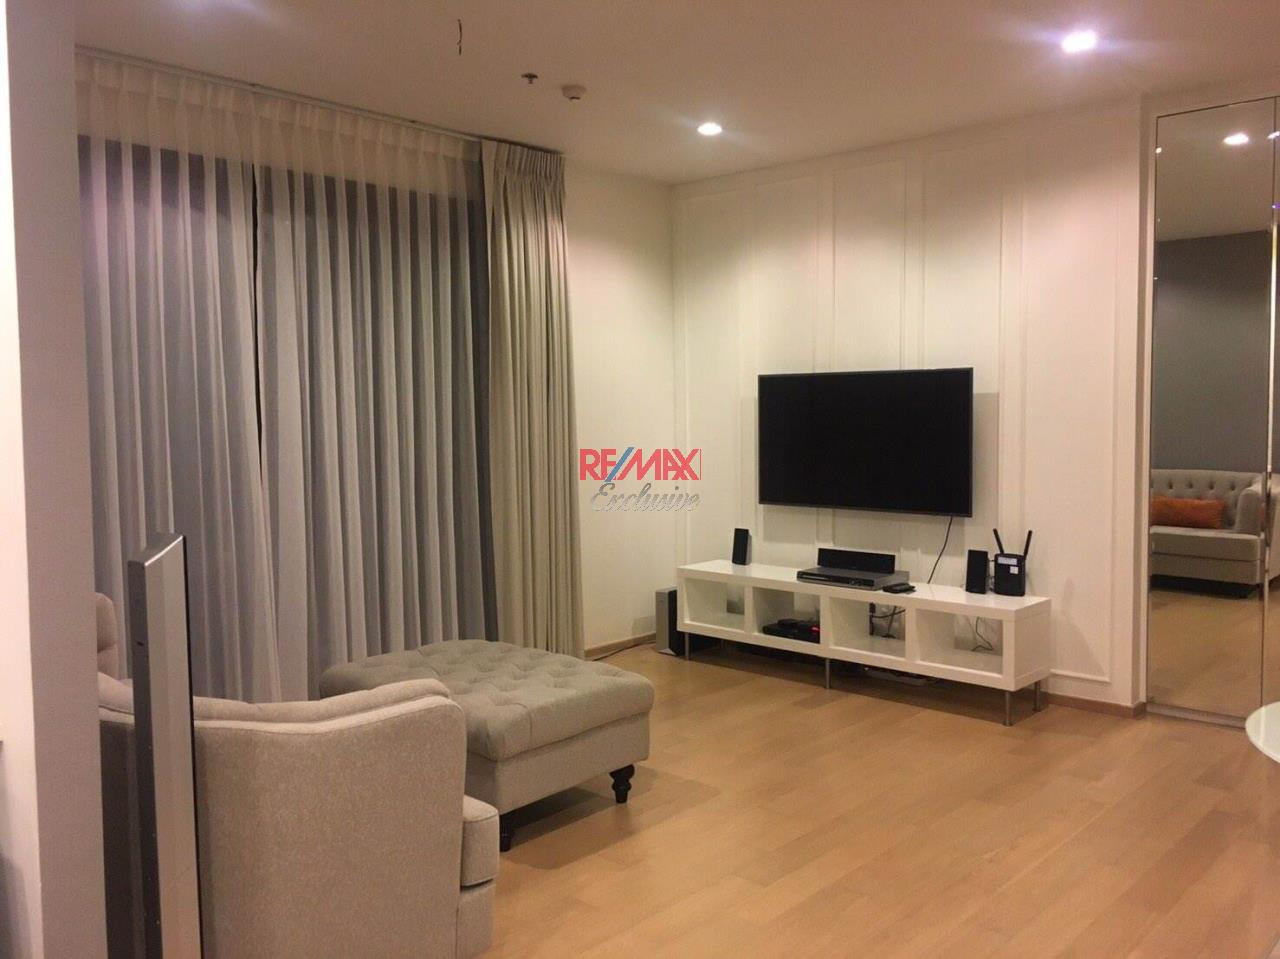 RE/MAX Exclusive Agency's HQ Thonglor, 2 Bedrooms 80 Sqm., High Floor With Nice View, For Rent!! 1